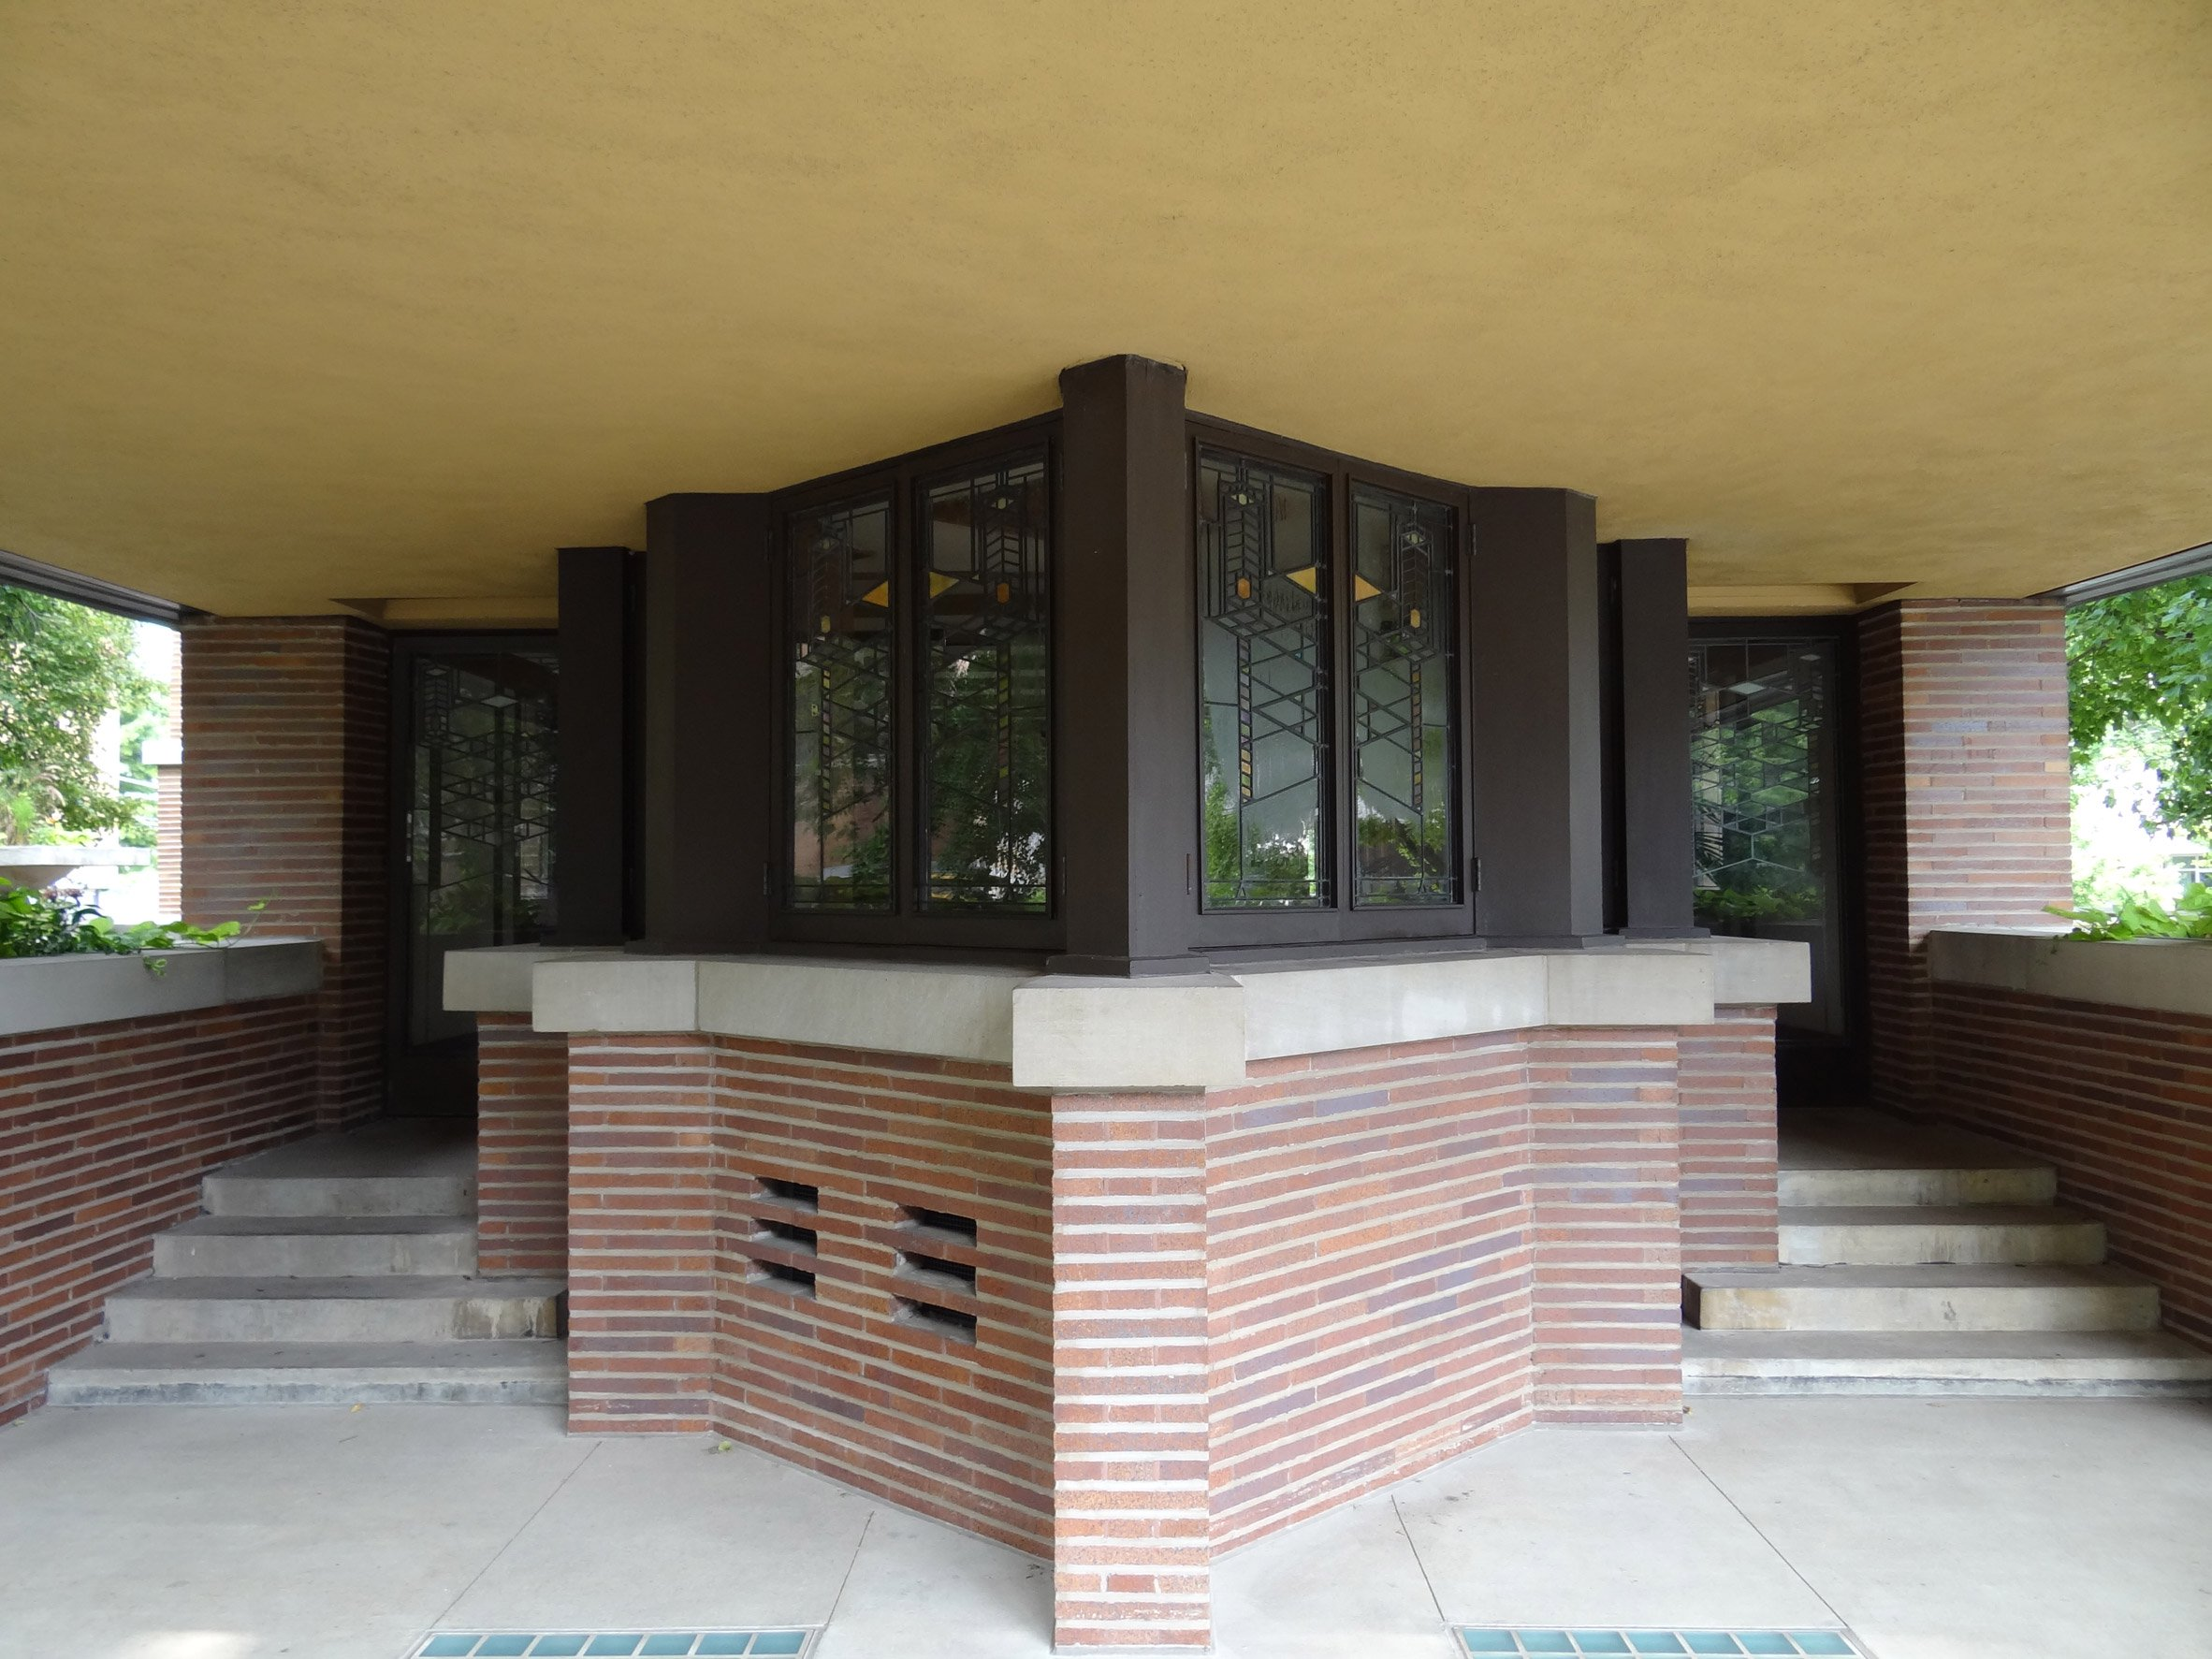 robie-house-illinois-frank-lloyd-wright - entrance